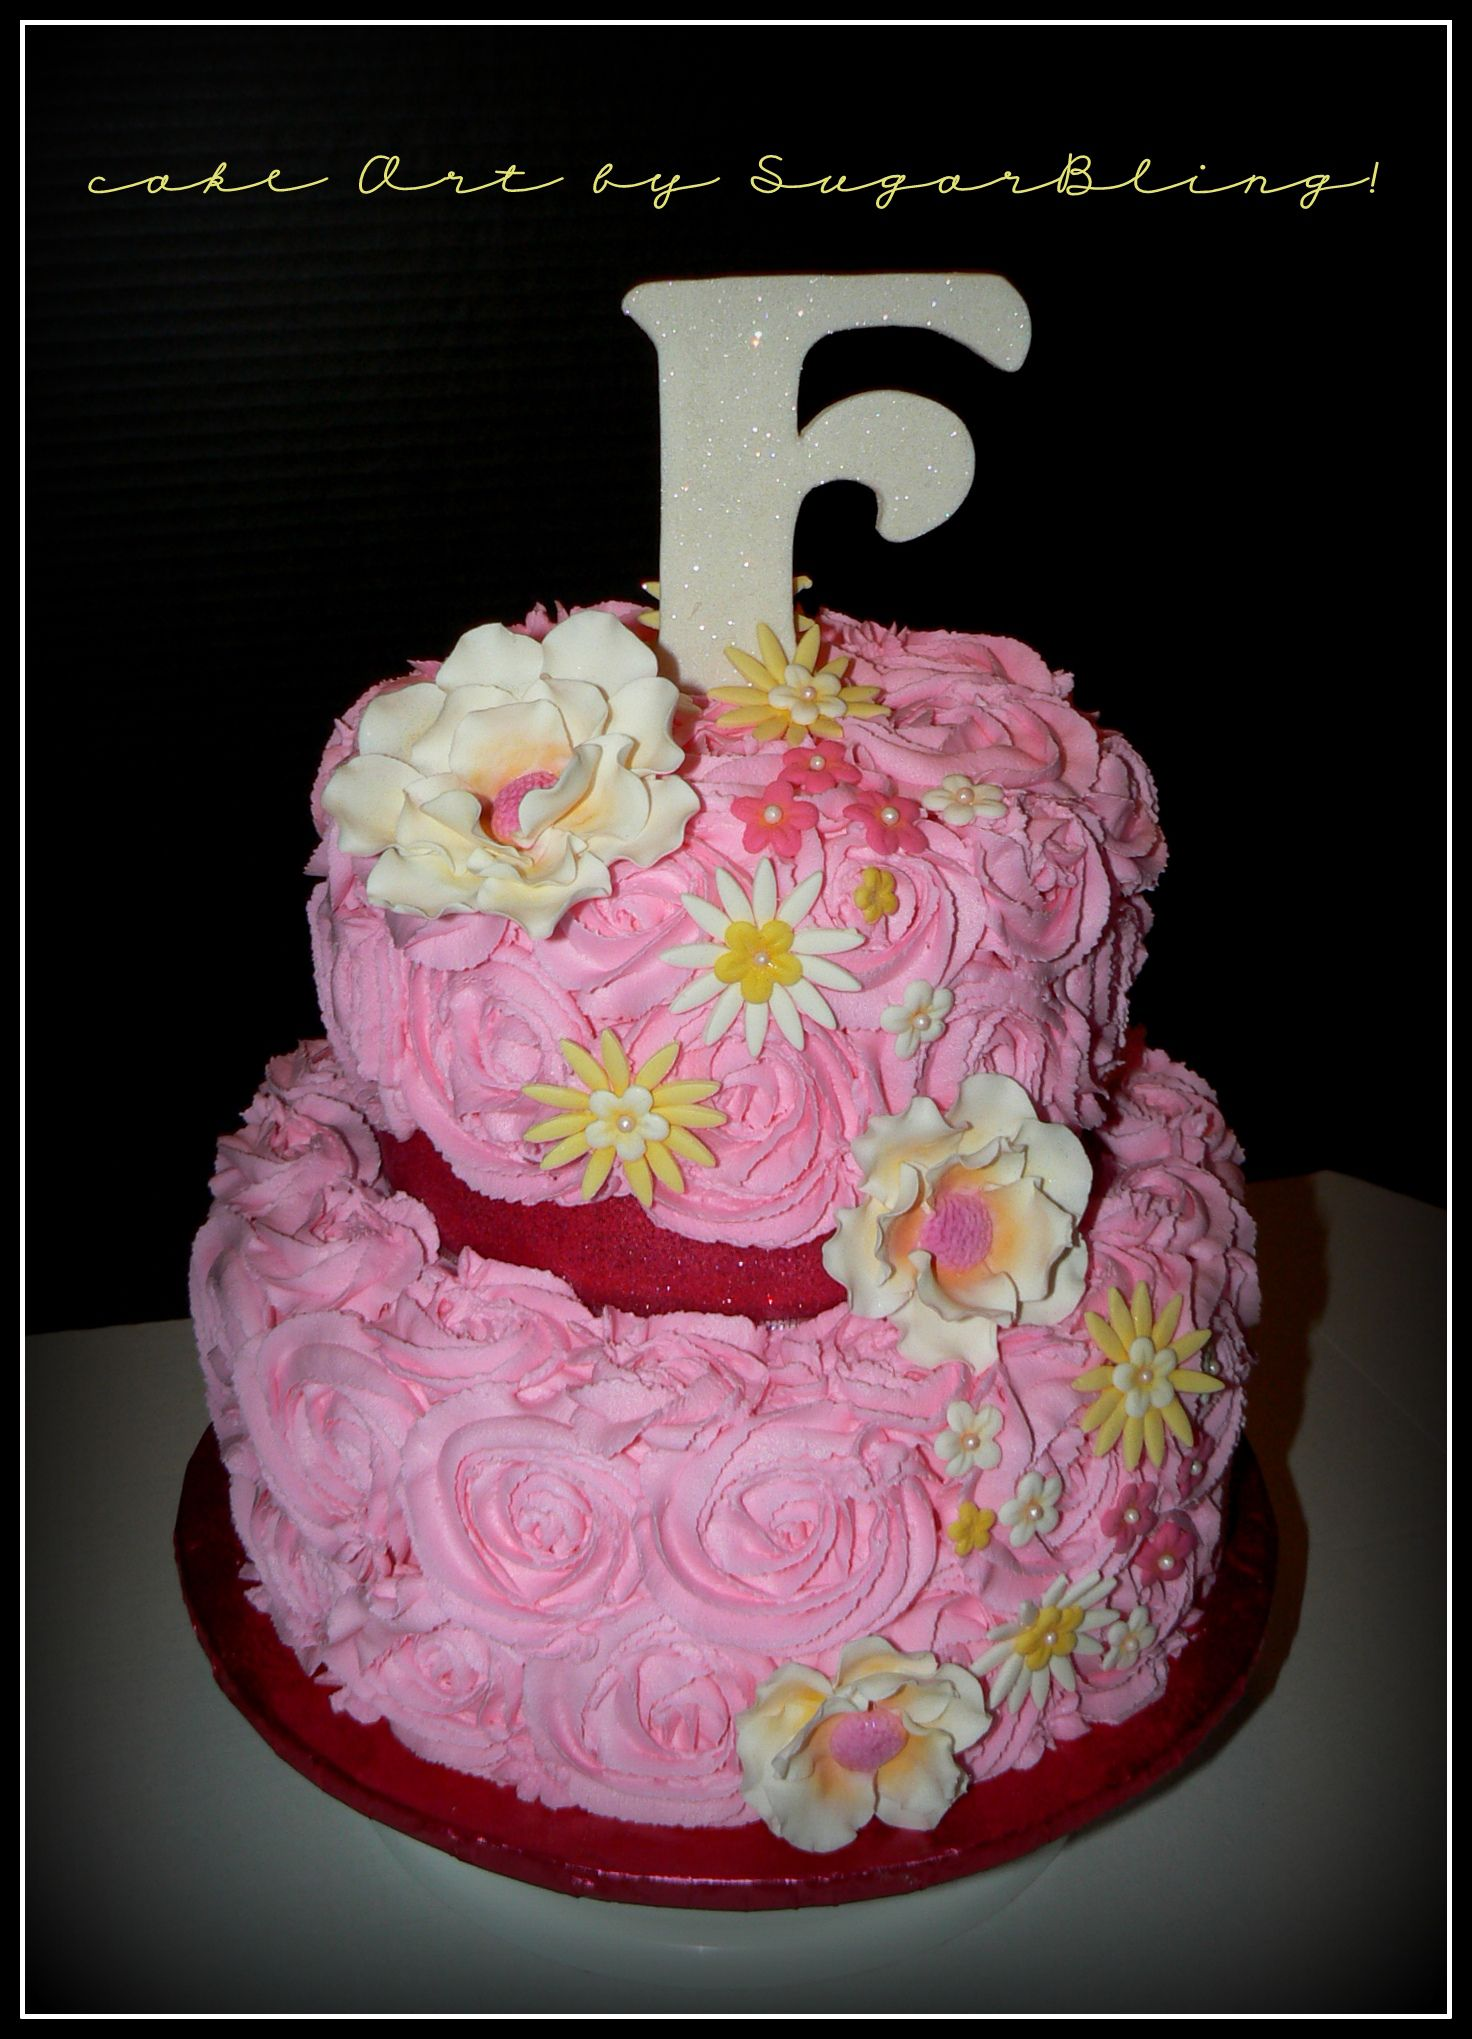 A birthday cake of piped buttercream roses and gumpaste flowers